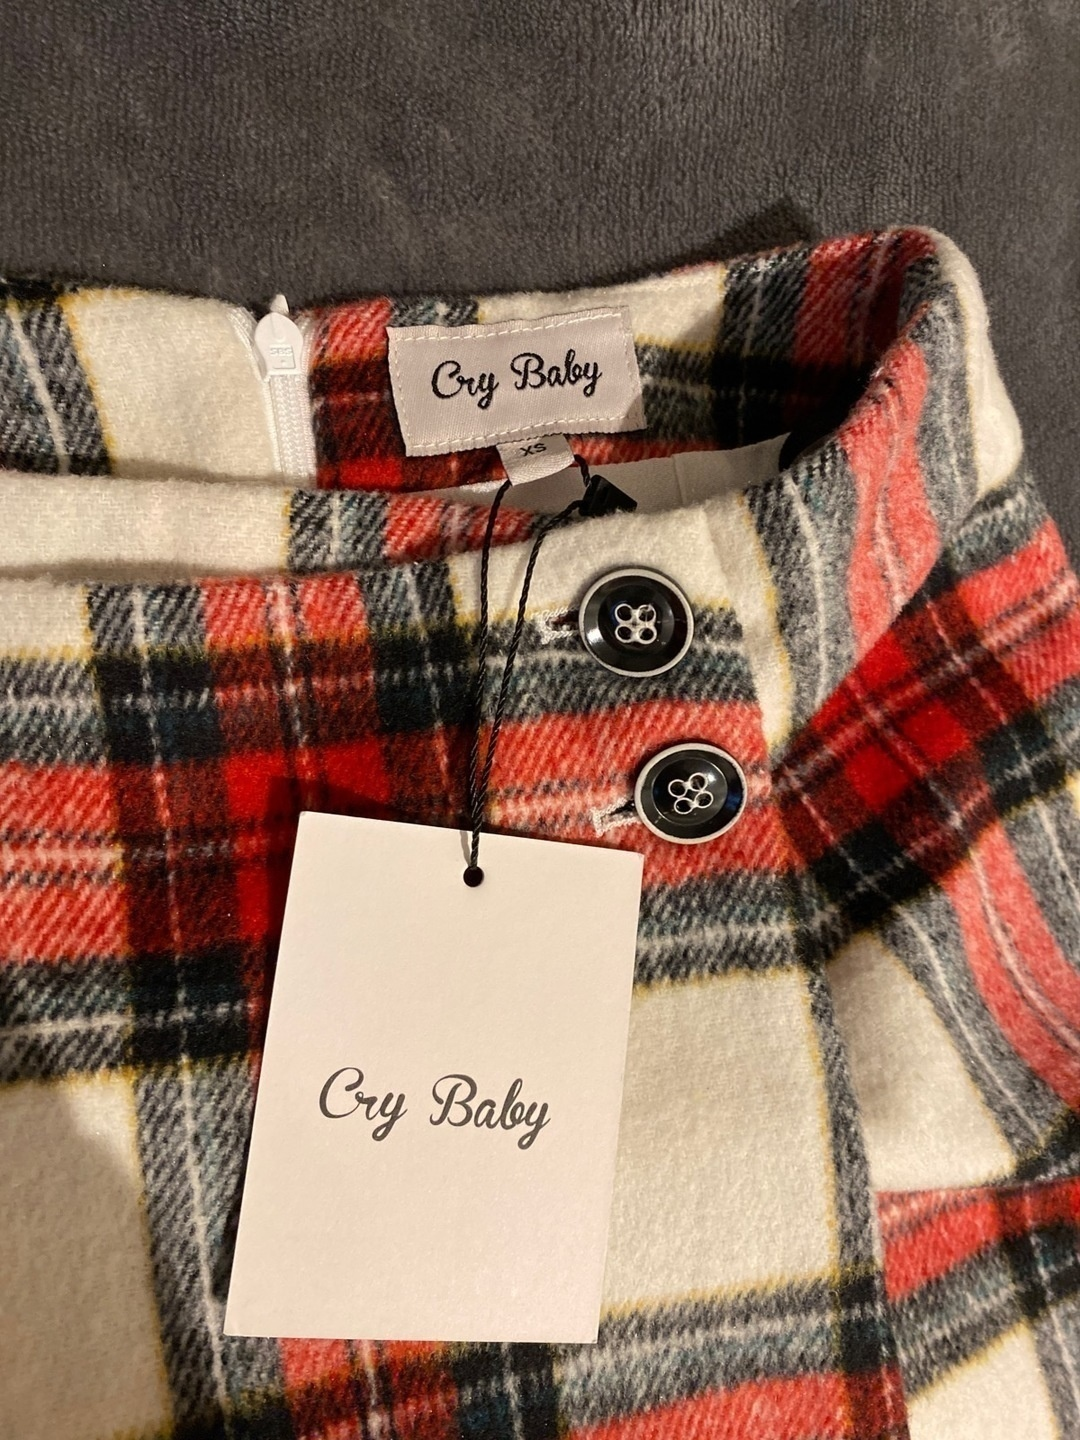 Women's skirts - CRY BABY photo 3